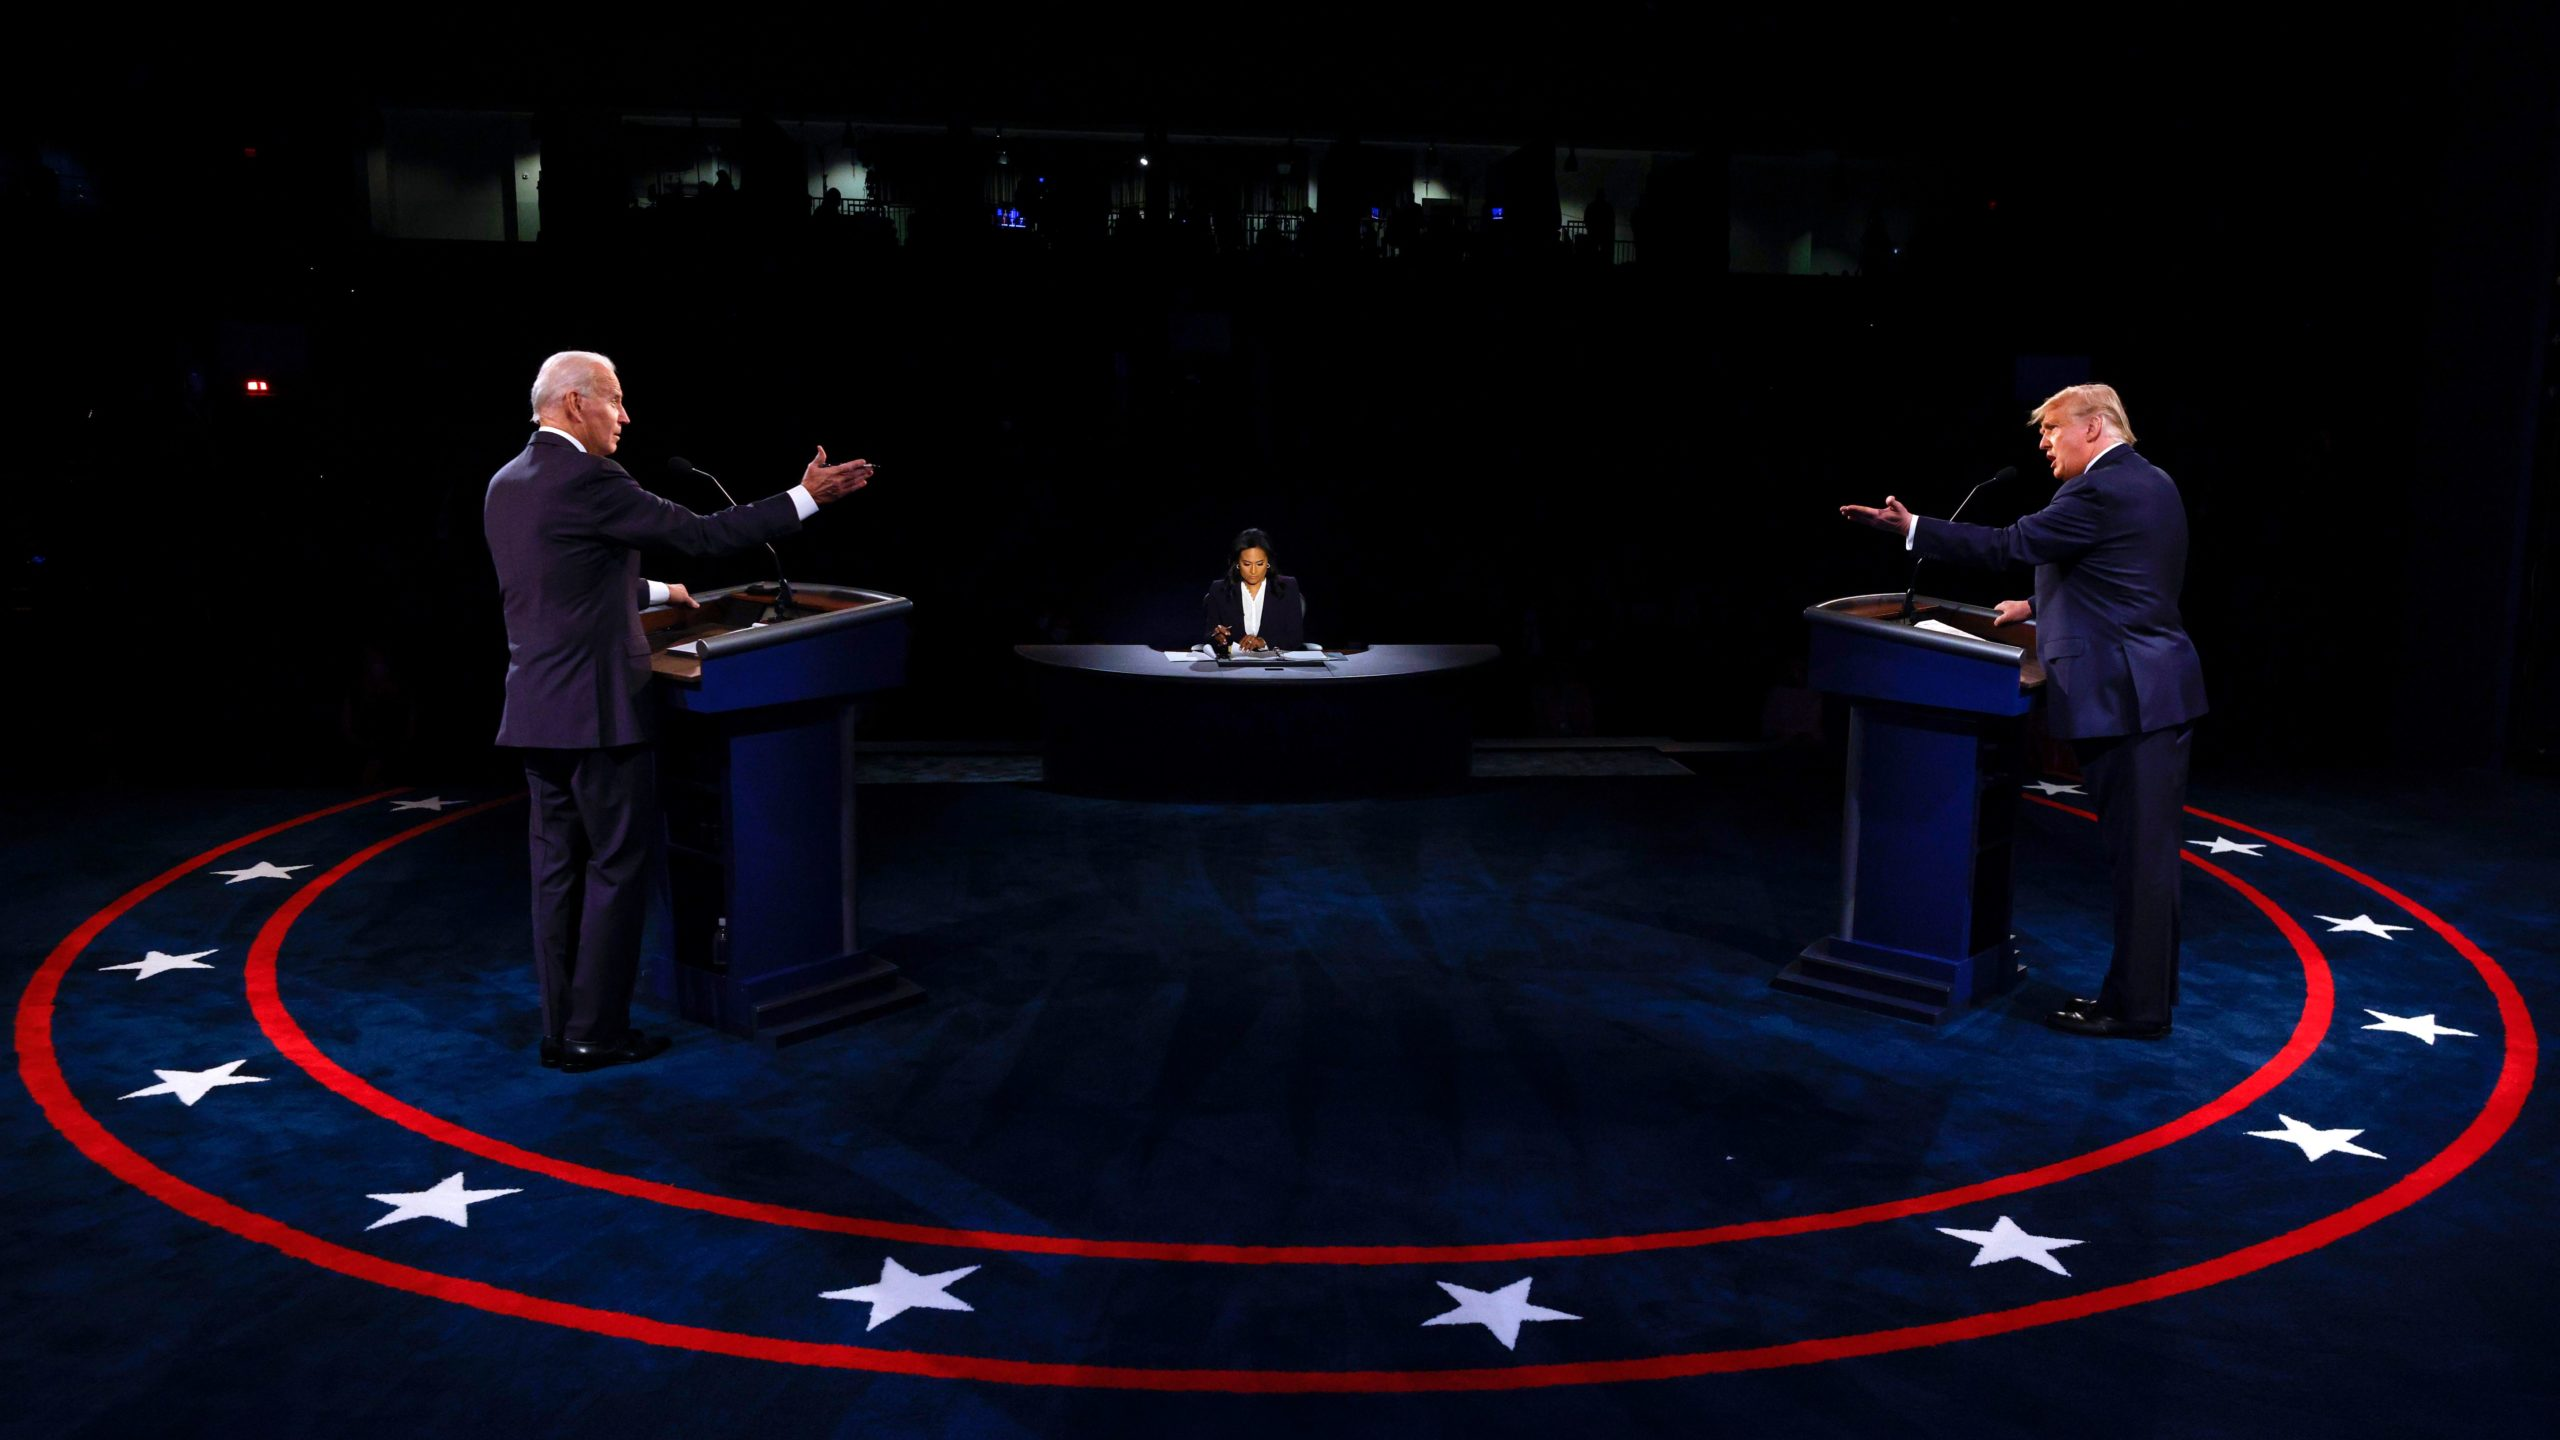 President Donald Trump and Democratic presidential nominee Joe Biden participate in the final presidential debate on Thursday. (Jim Bourg/Pool/AFP via Getty Images)